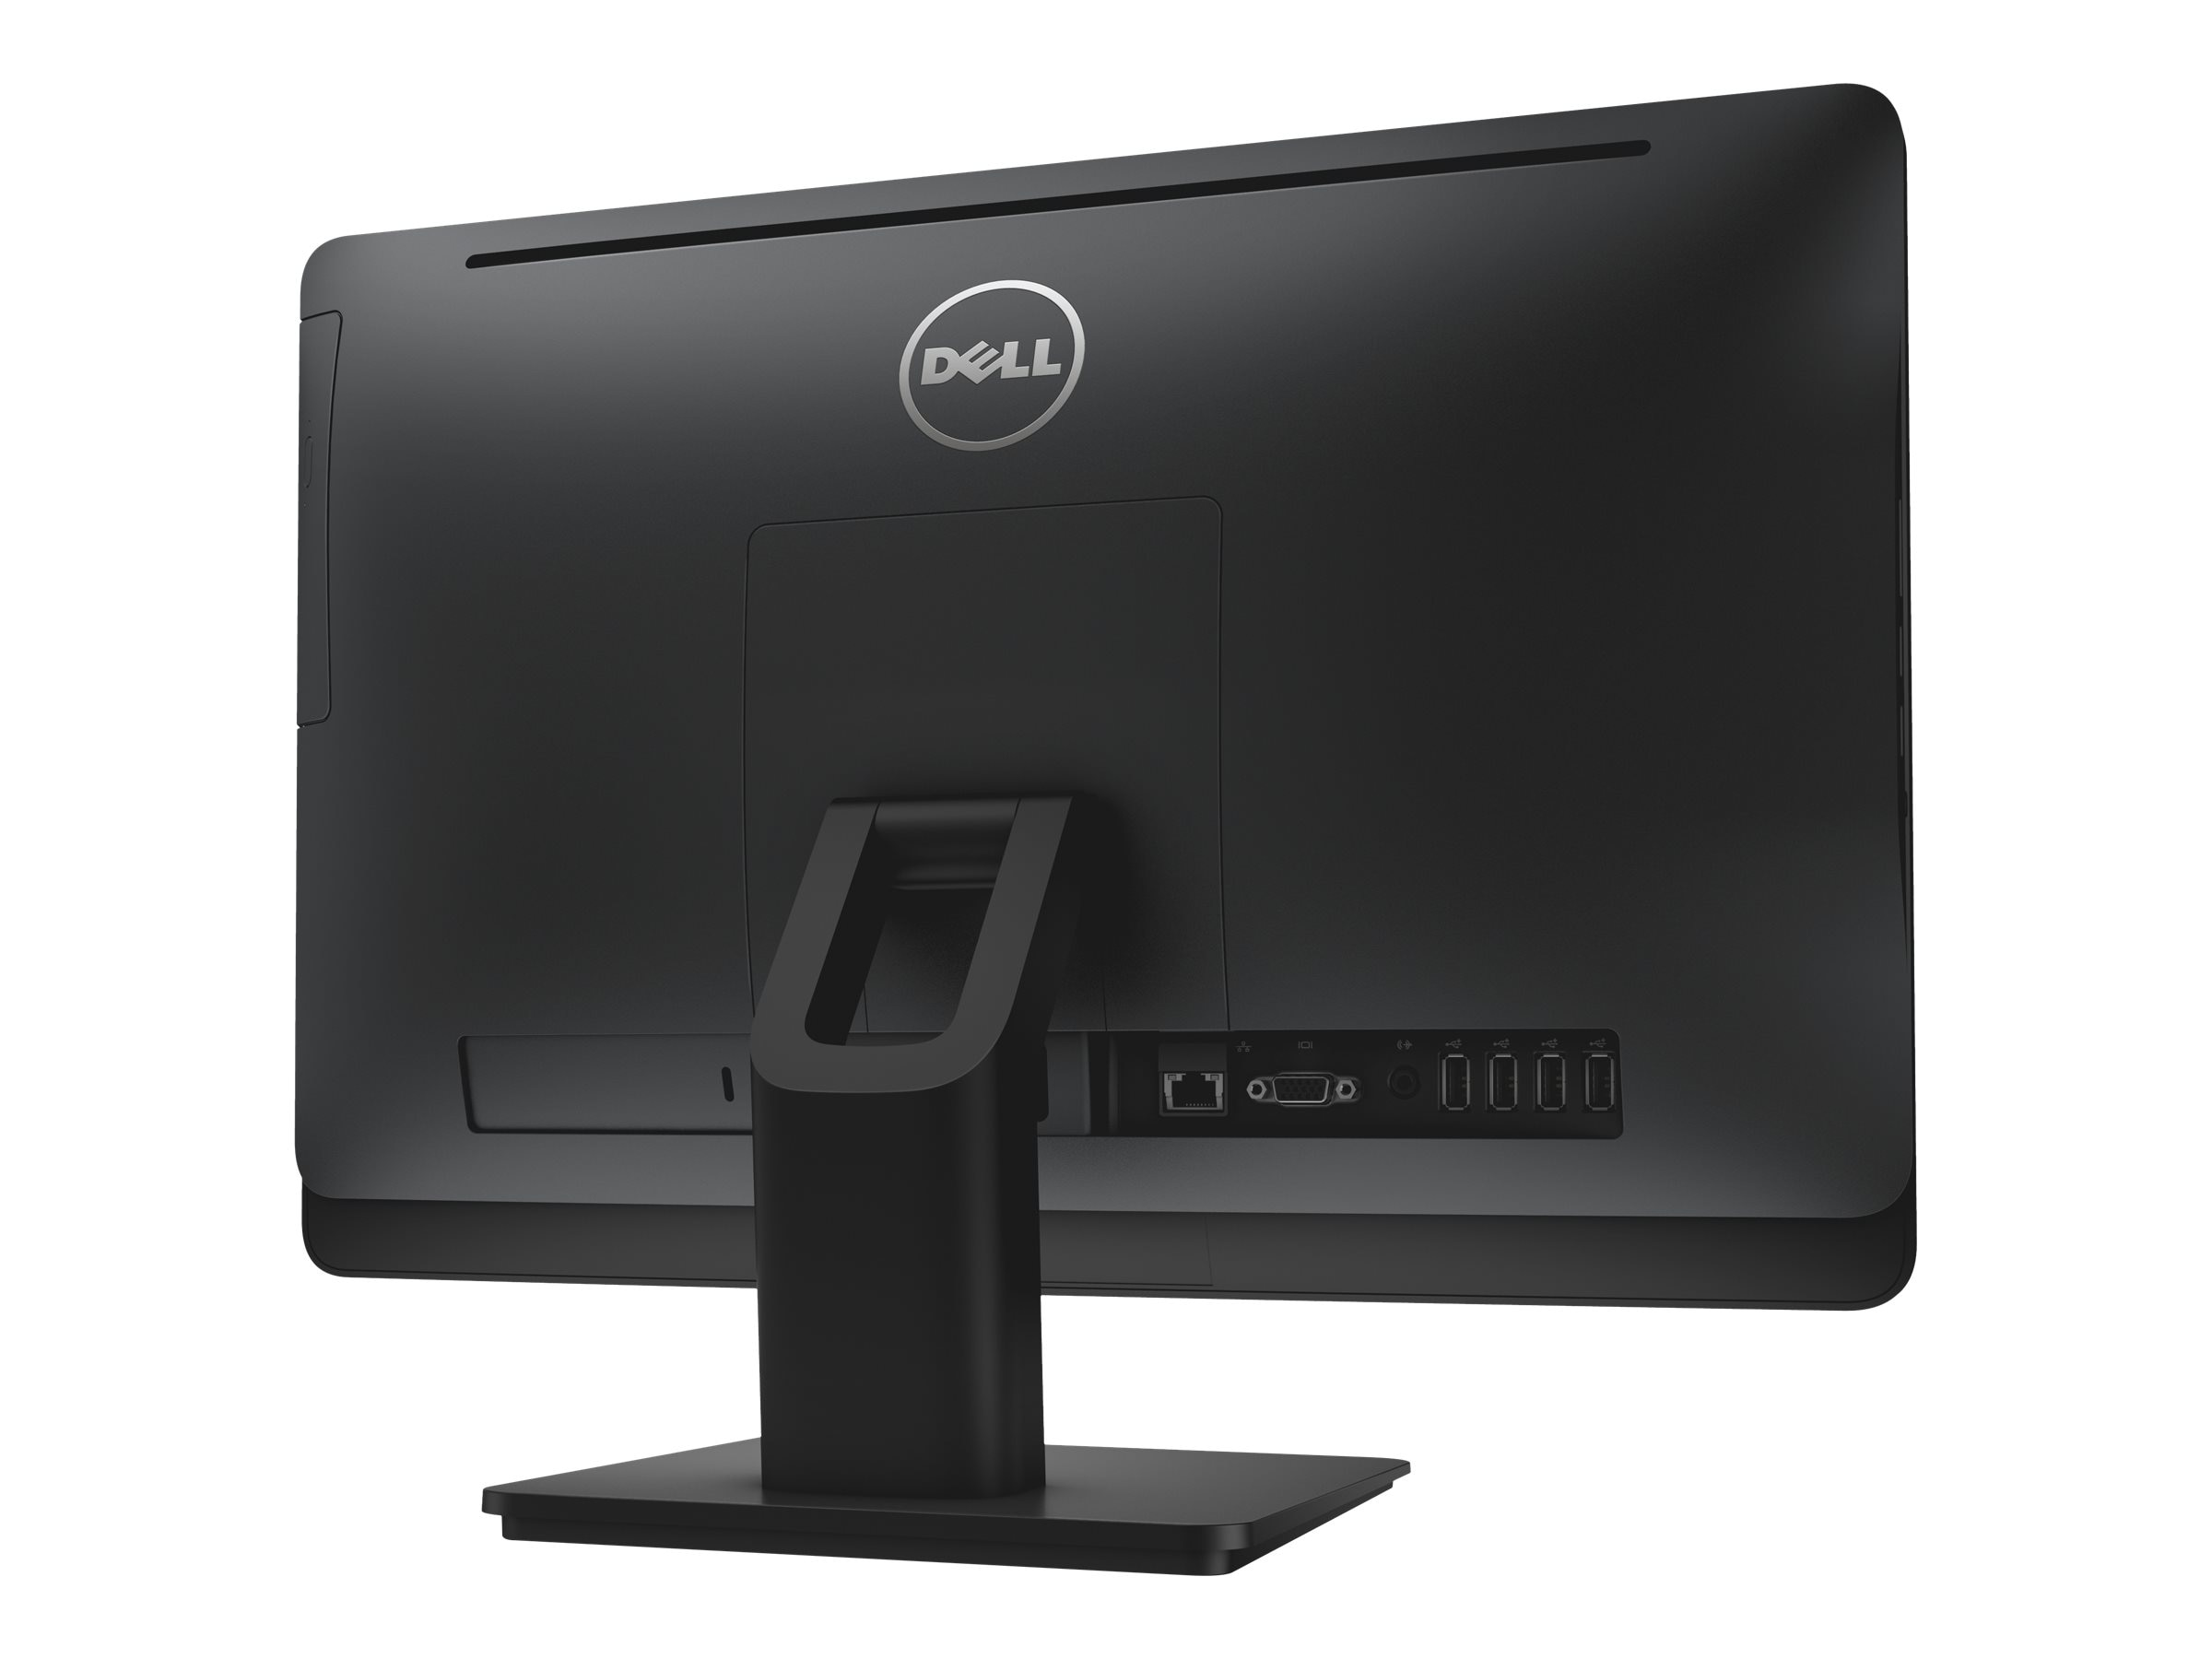 Dell OptiPlex 3030 AIO Core i3-4170 3.7GHz 4GB 500GB DVD+RW GbE agn 19.5 HD+ Touch W10P64, 6GK1R